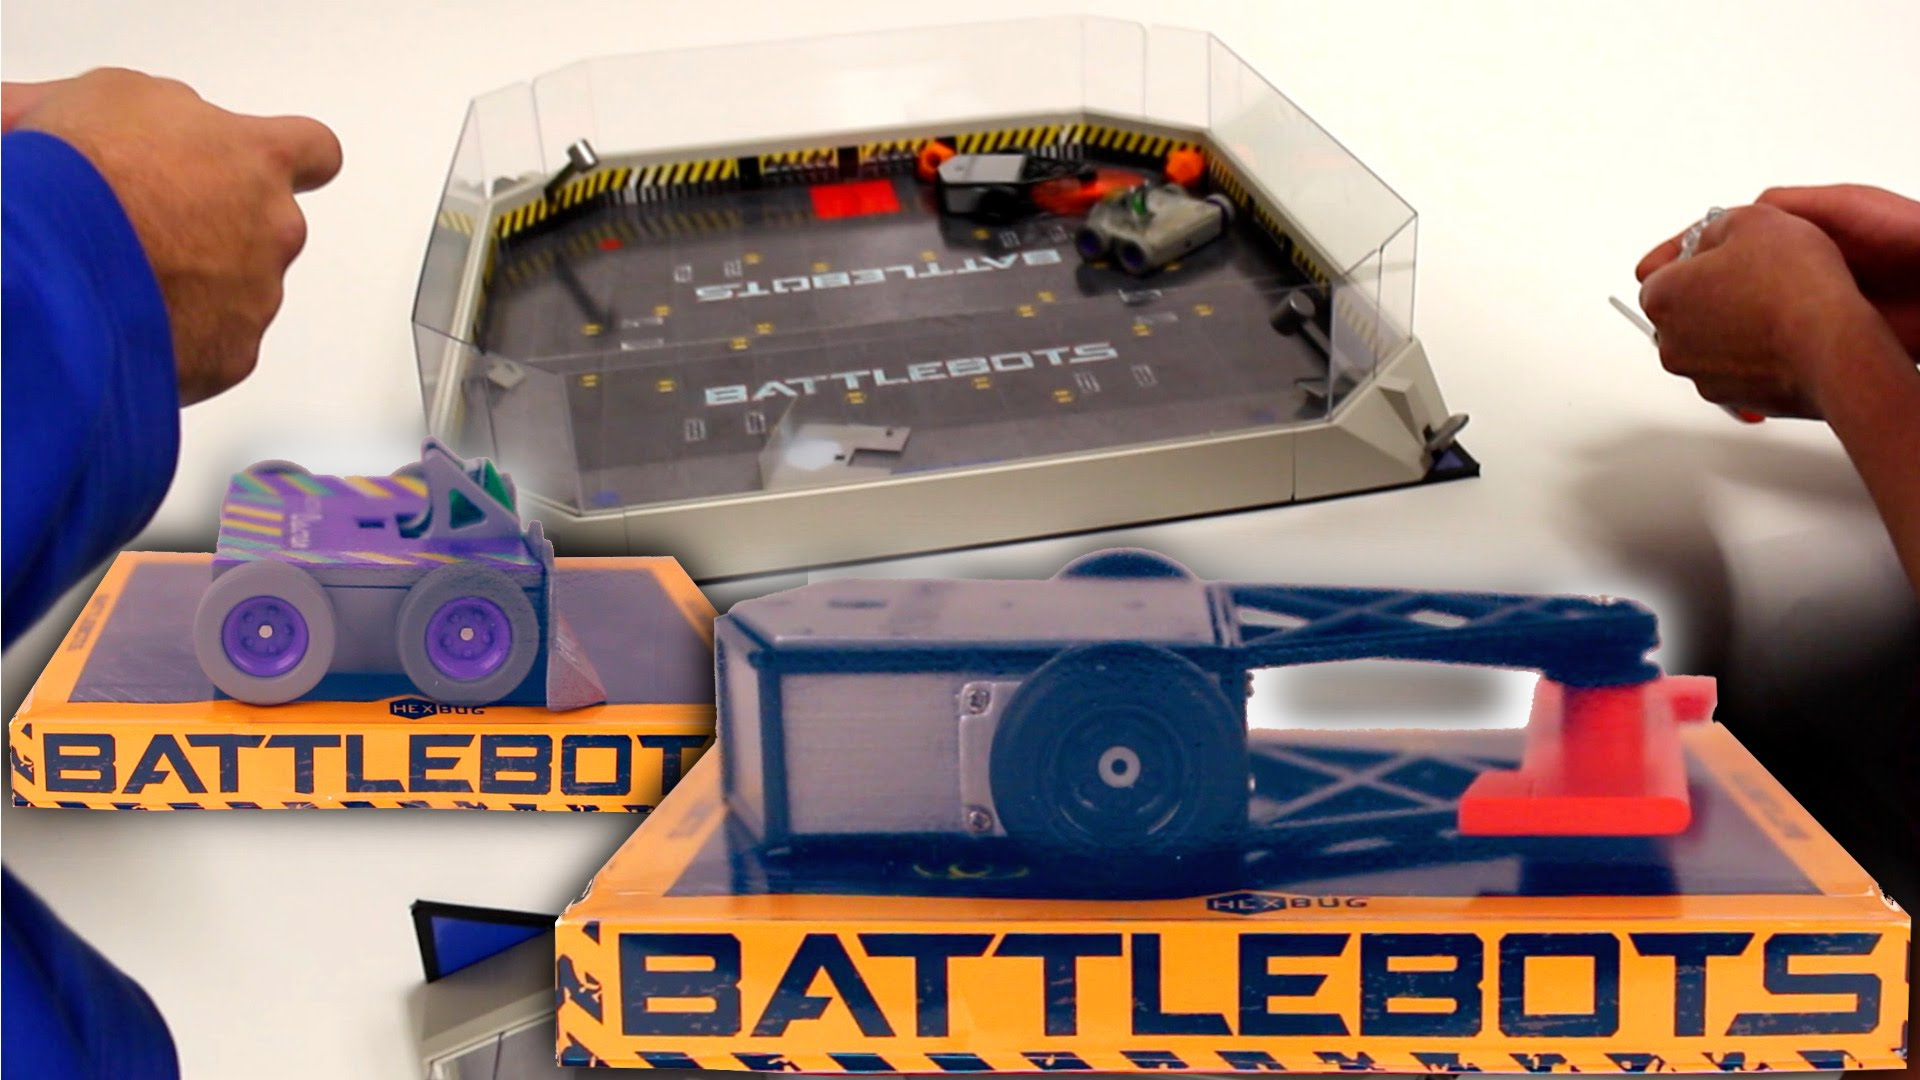 Battlebots Hex Bug Battle (Tombstone vs Witch Doctor)